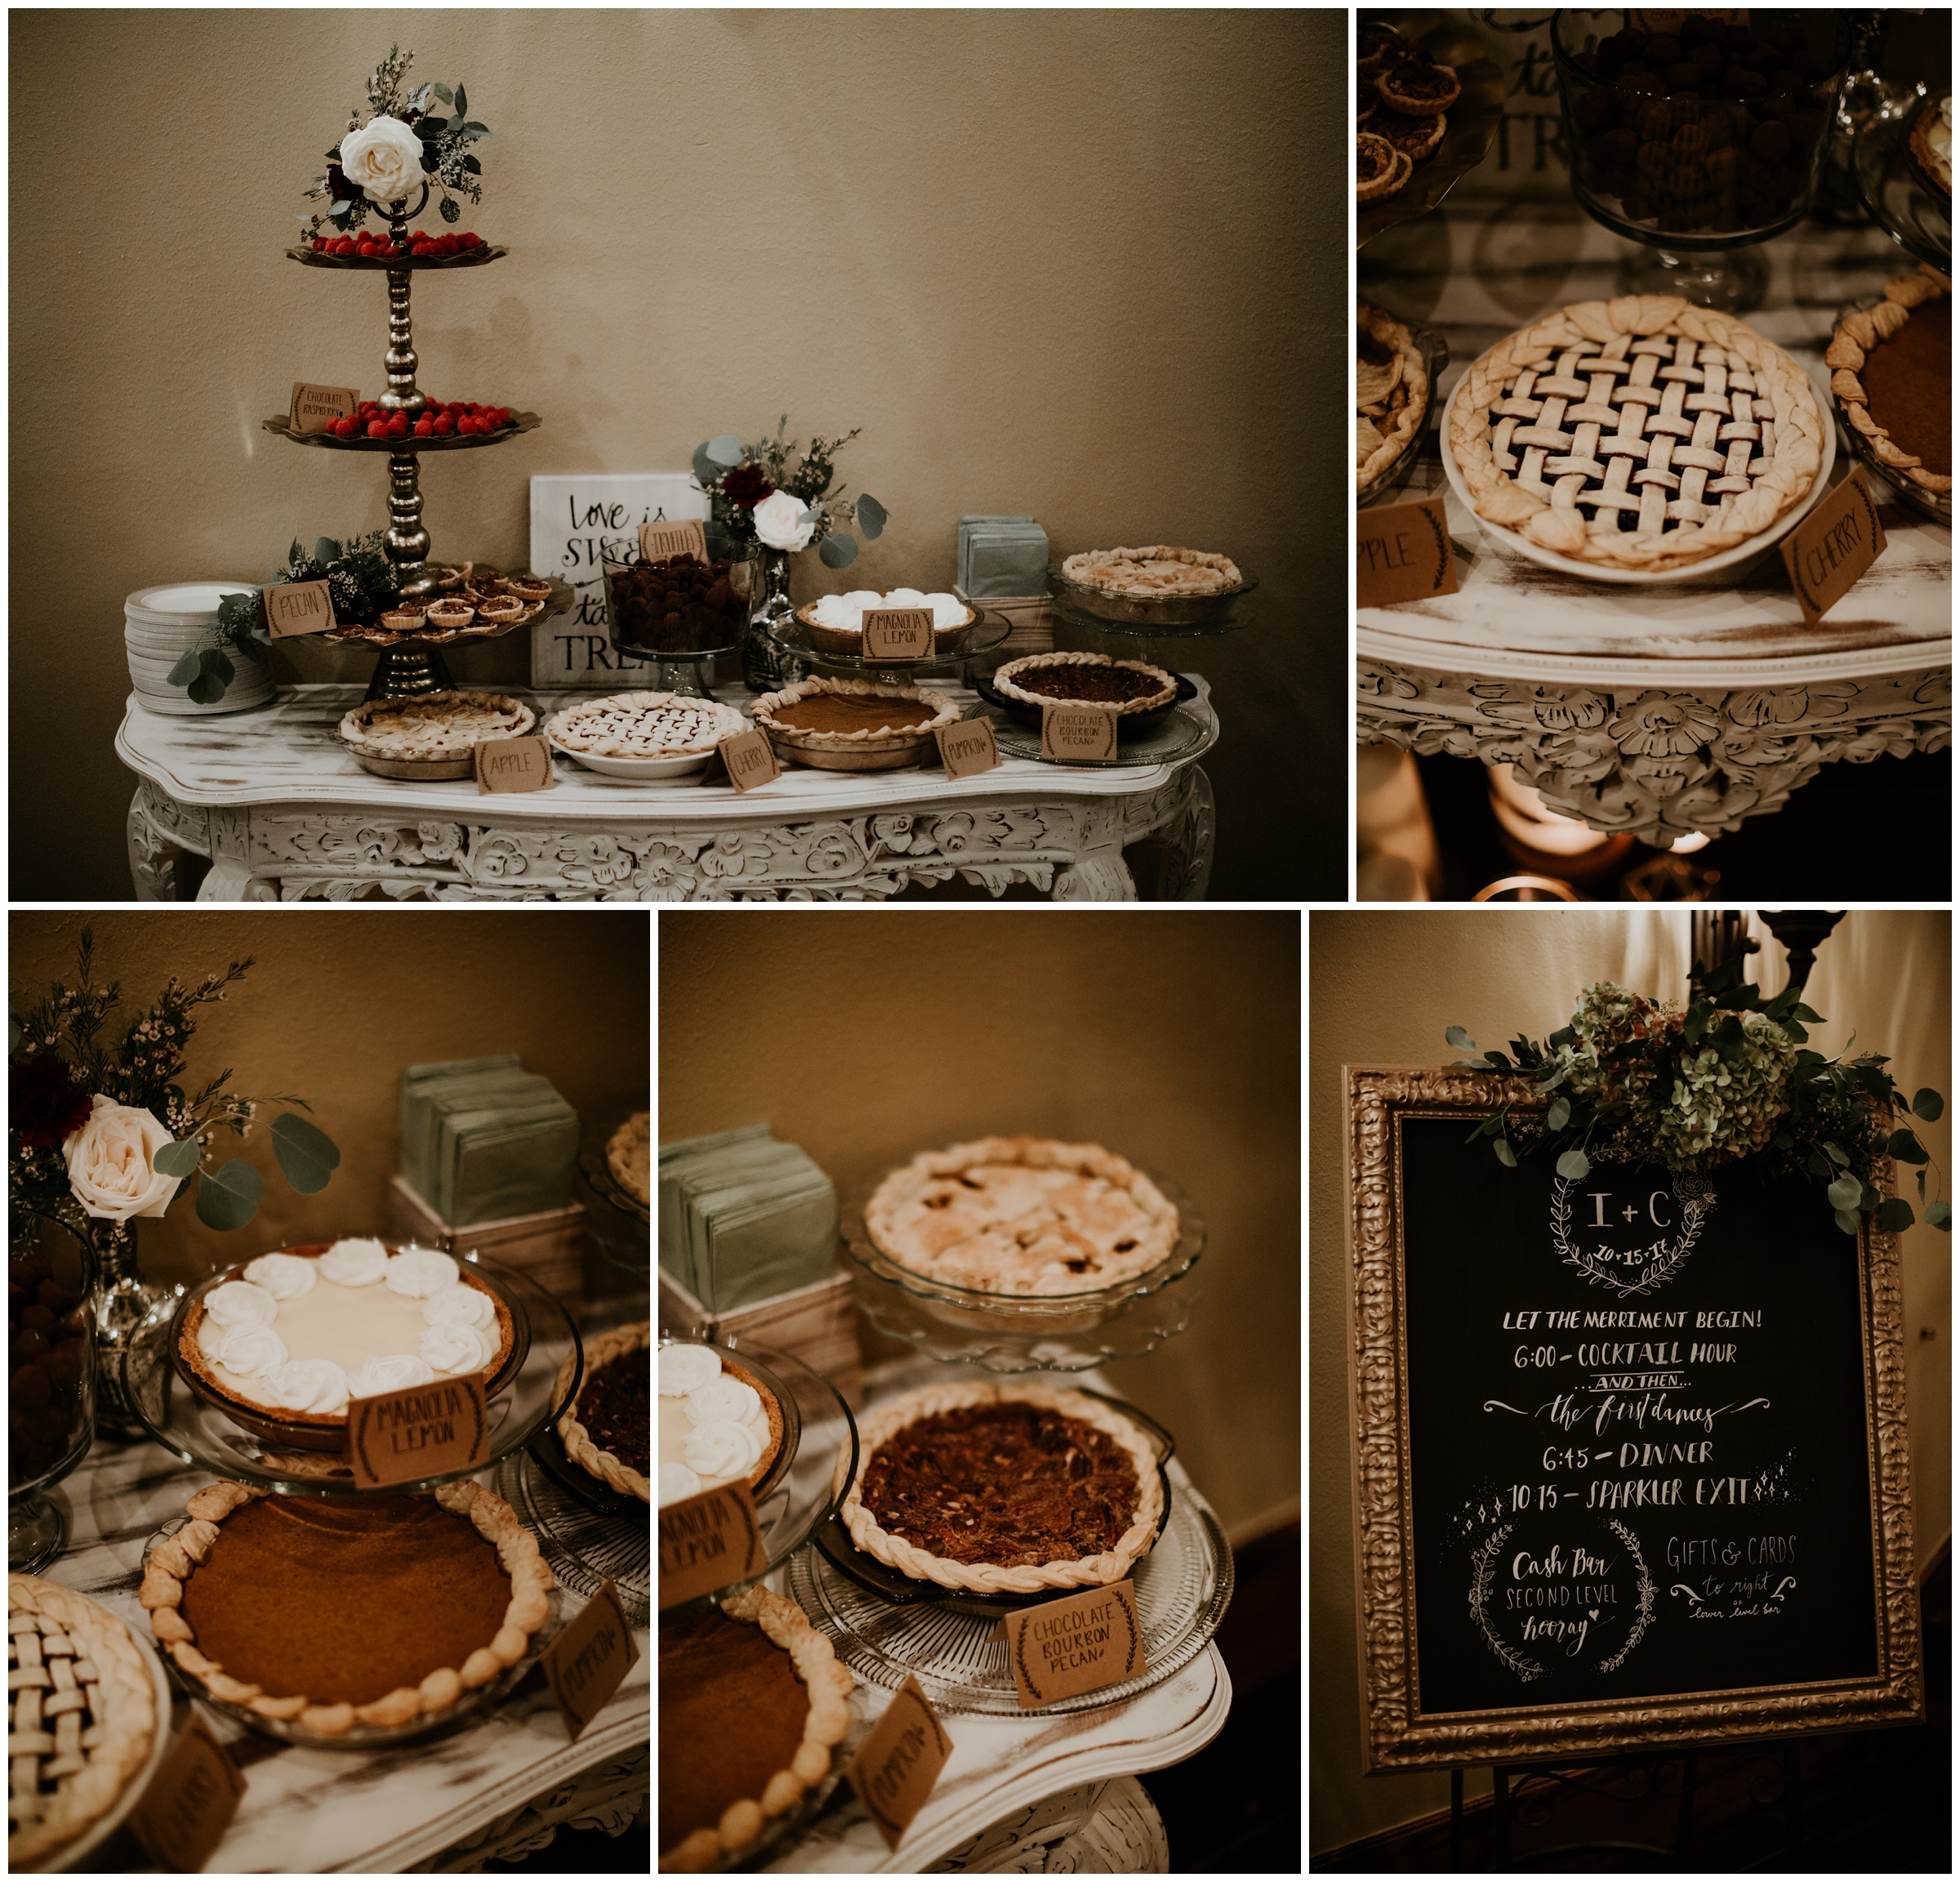 earth and honey pies, cakes, and macarons